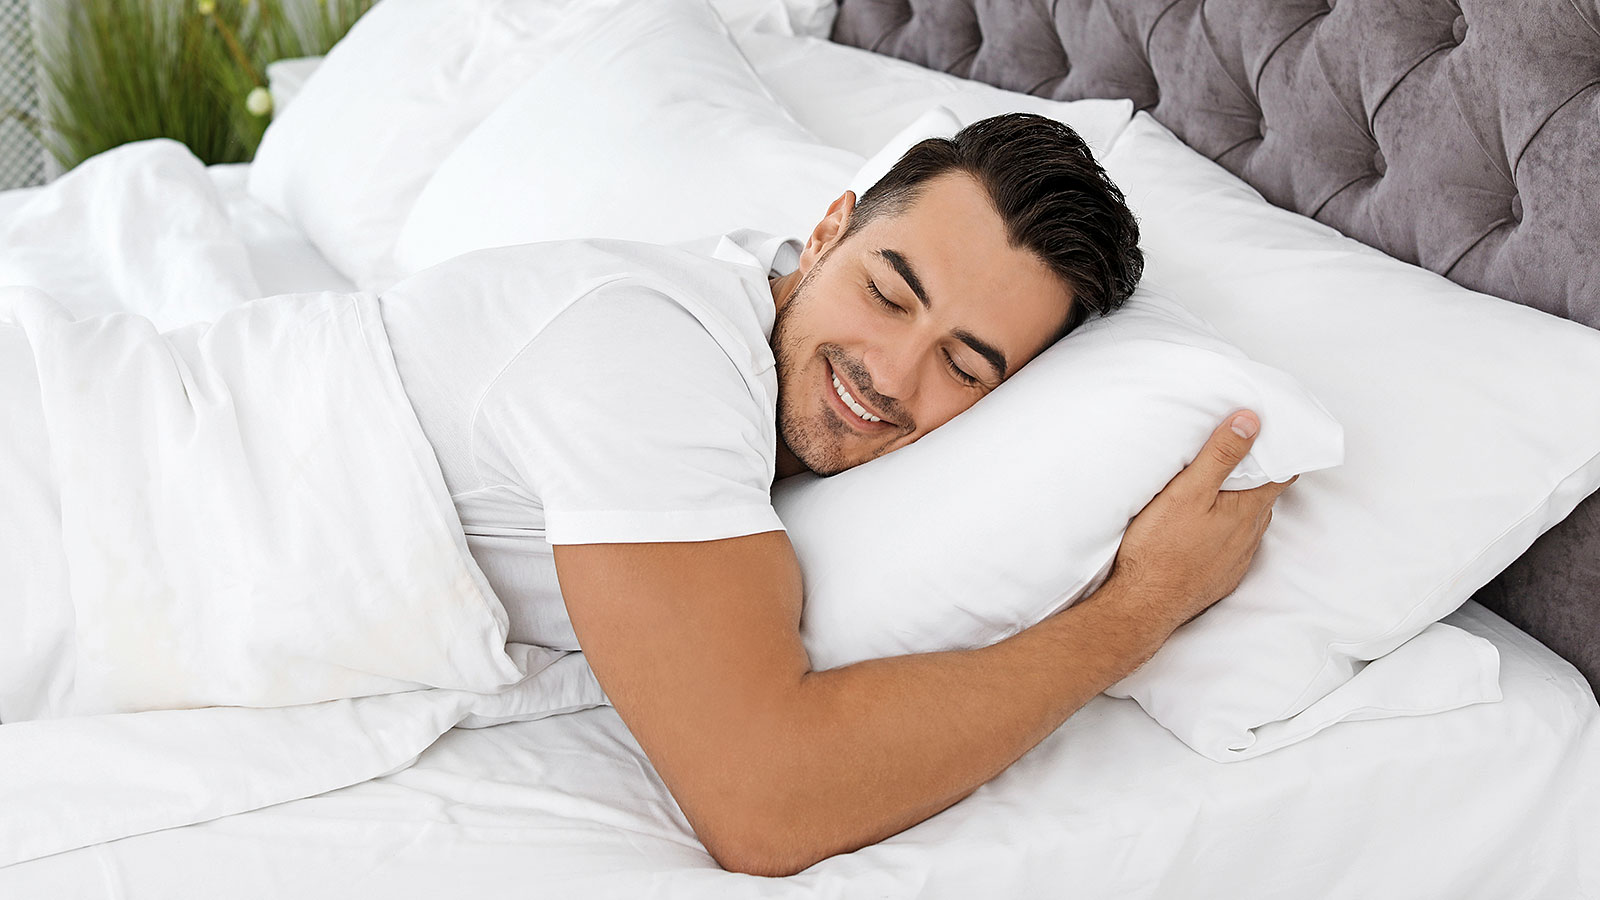 A third of adults sleep with this embarrassing thing